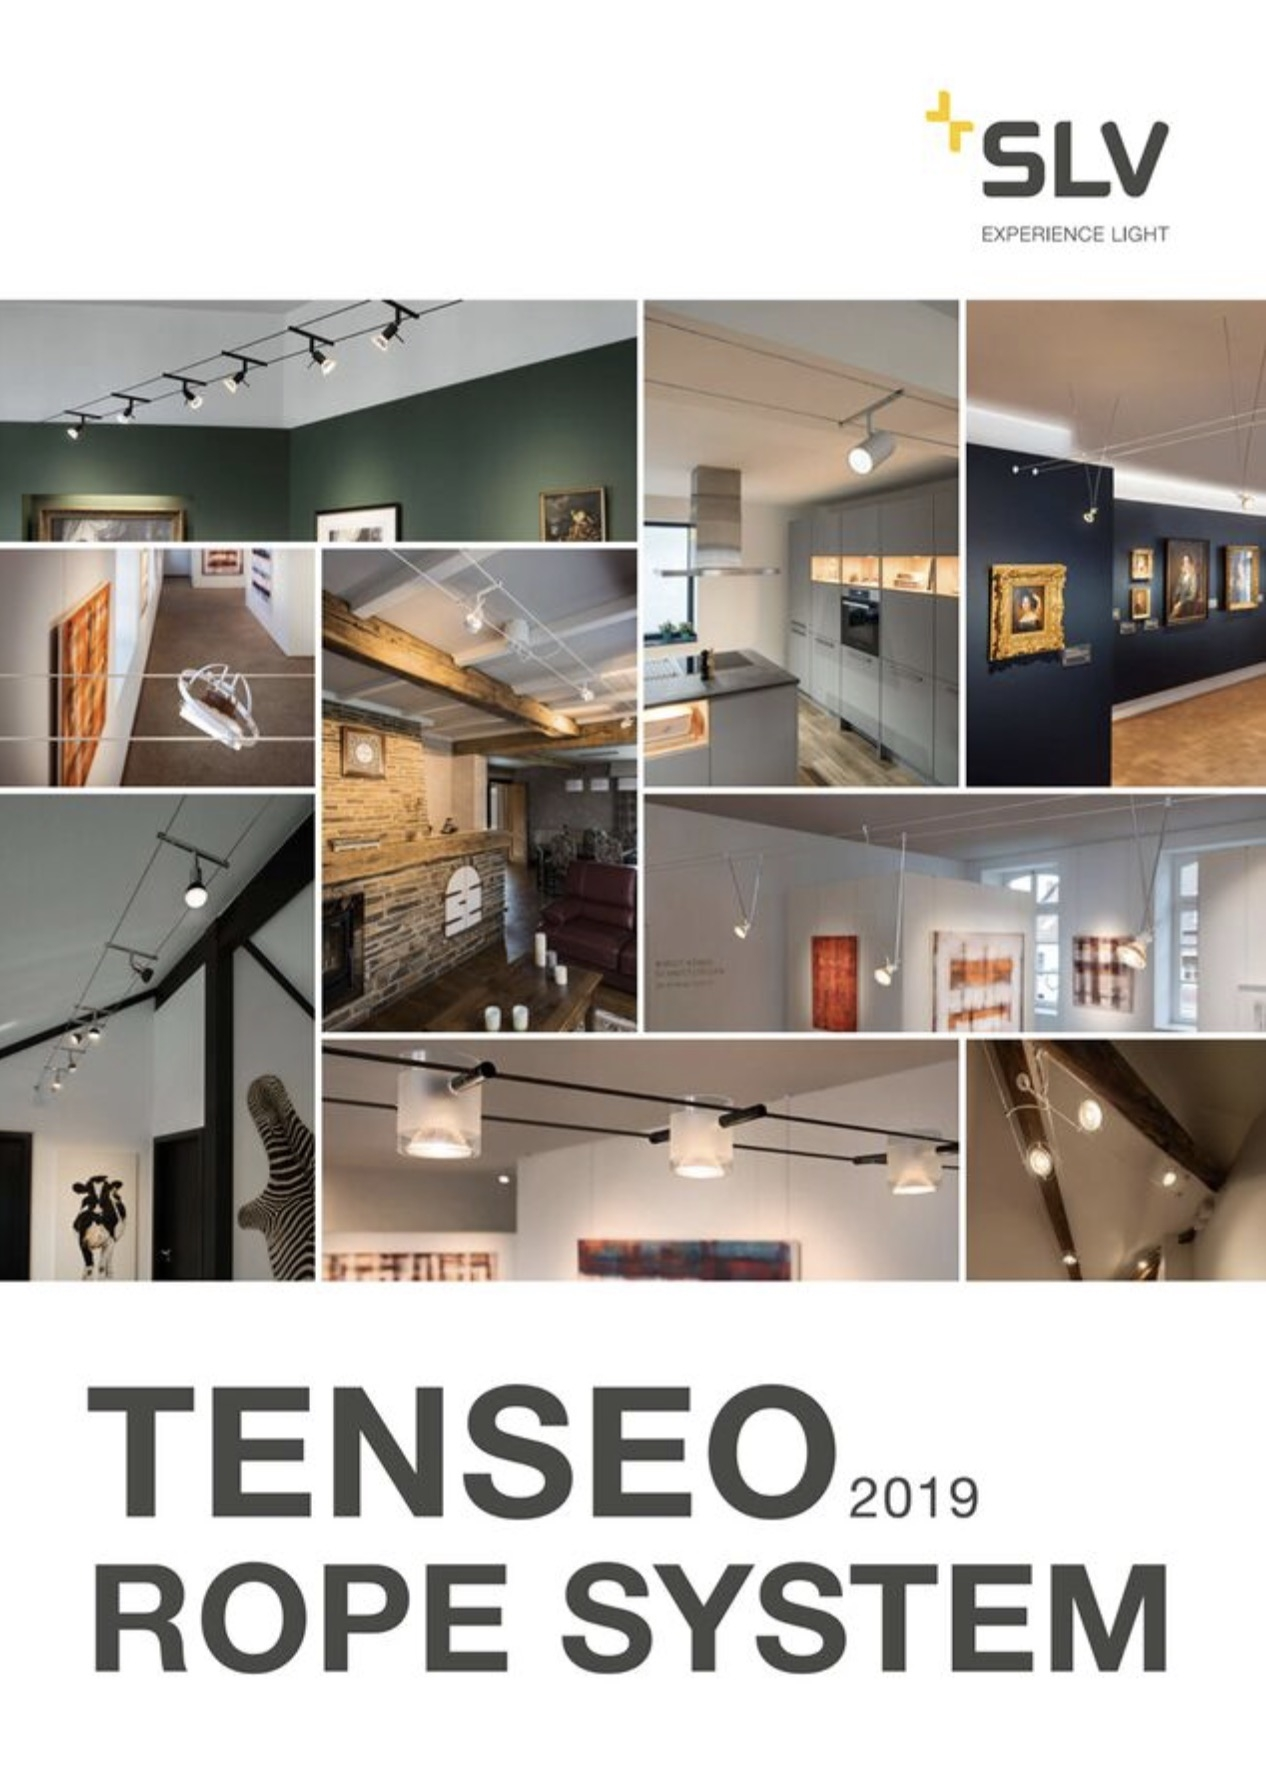 SLV TENSEO ROPE SYSTEM 2019